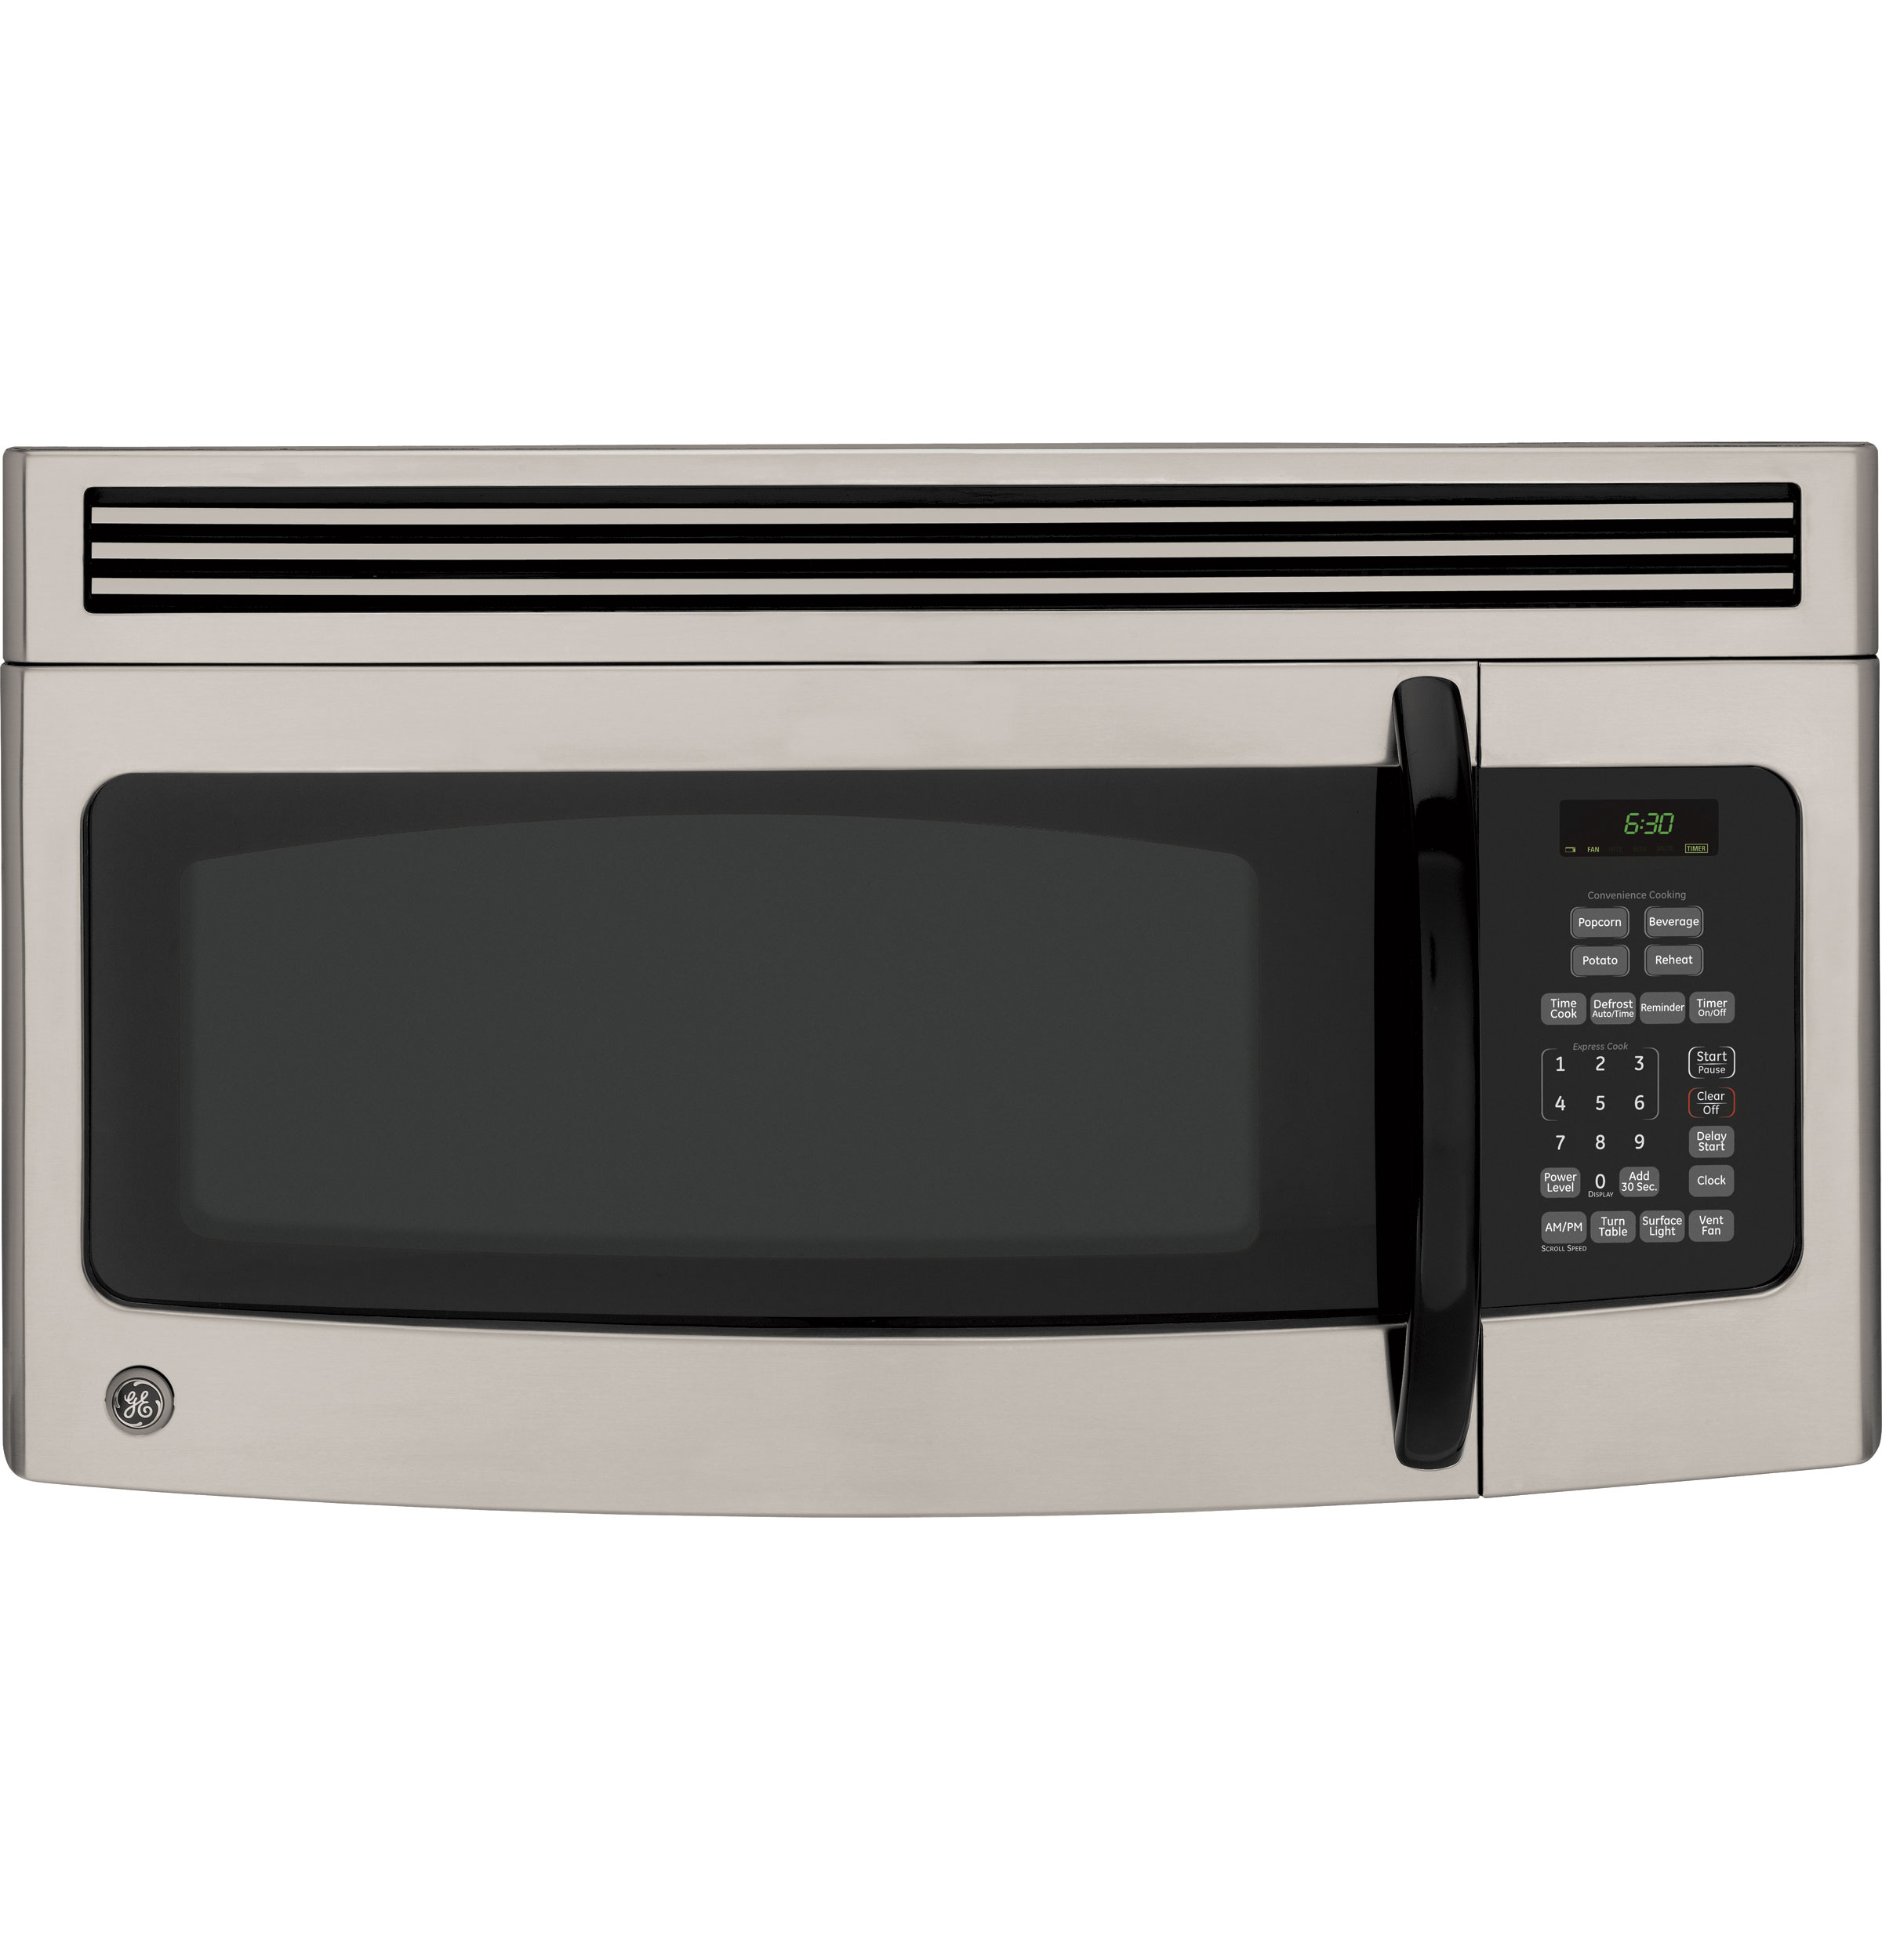 ge spacemaker 1 5 cu ft over the range microwave oven